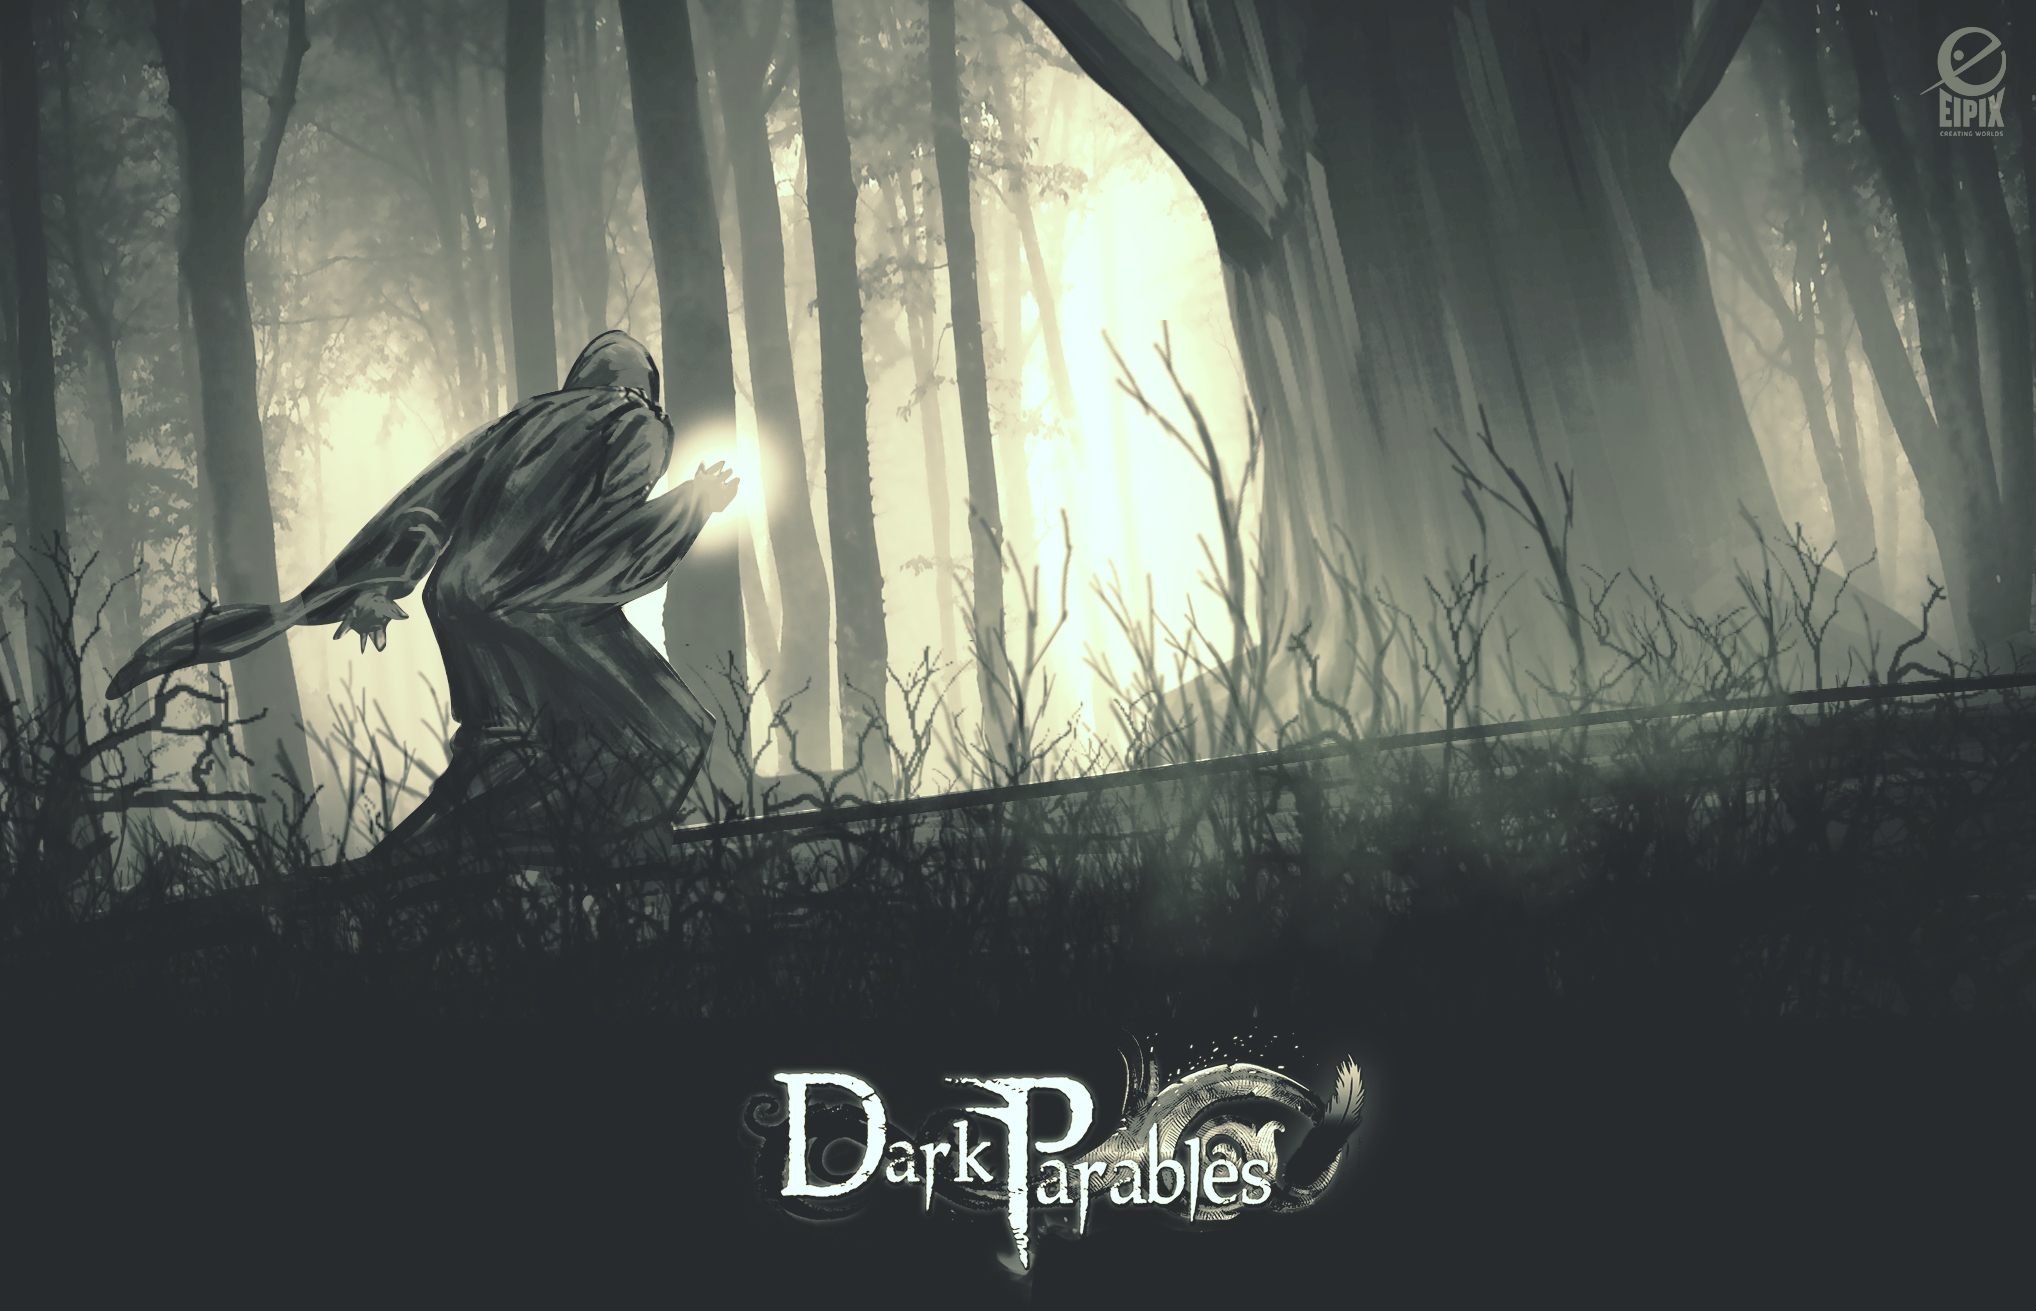 Dark Parables: The Thief and the Tinderbox